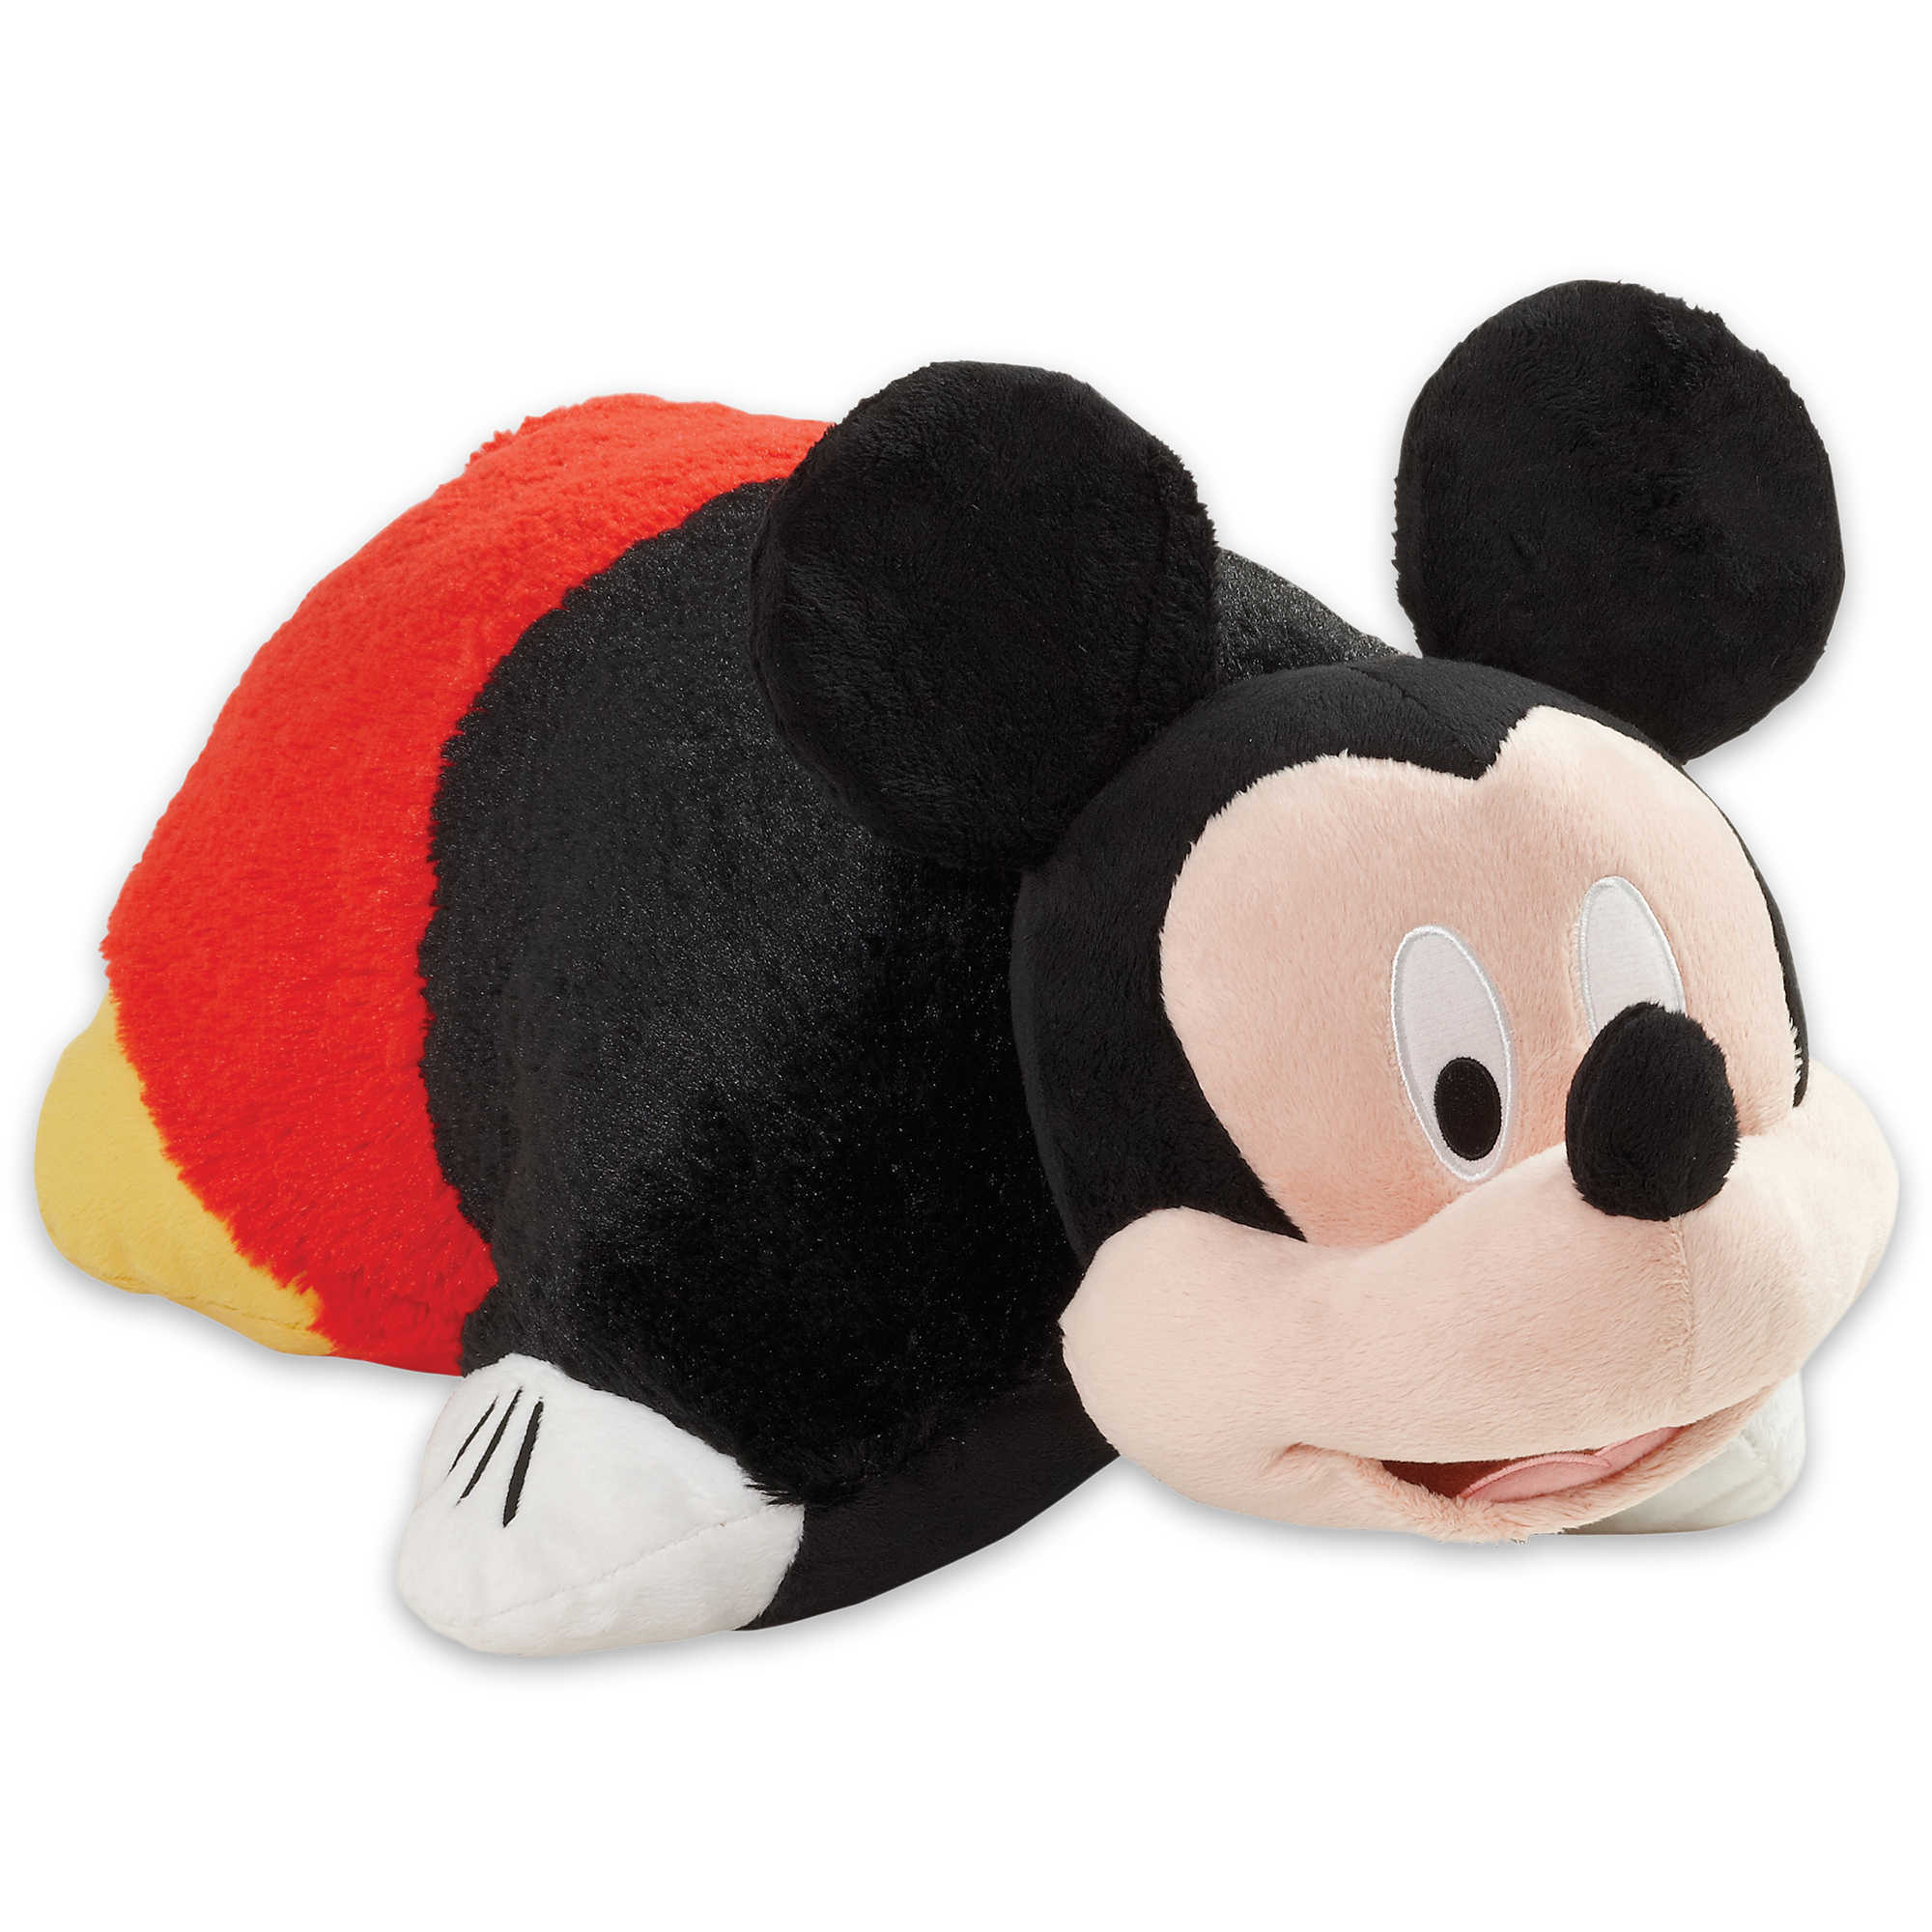 """Pillow Pets 16"""" Disney Mickey Mouse Stuffed Animal Plush Toy Pillow Pet by CJ Products"""